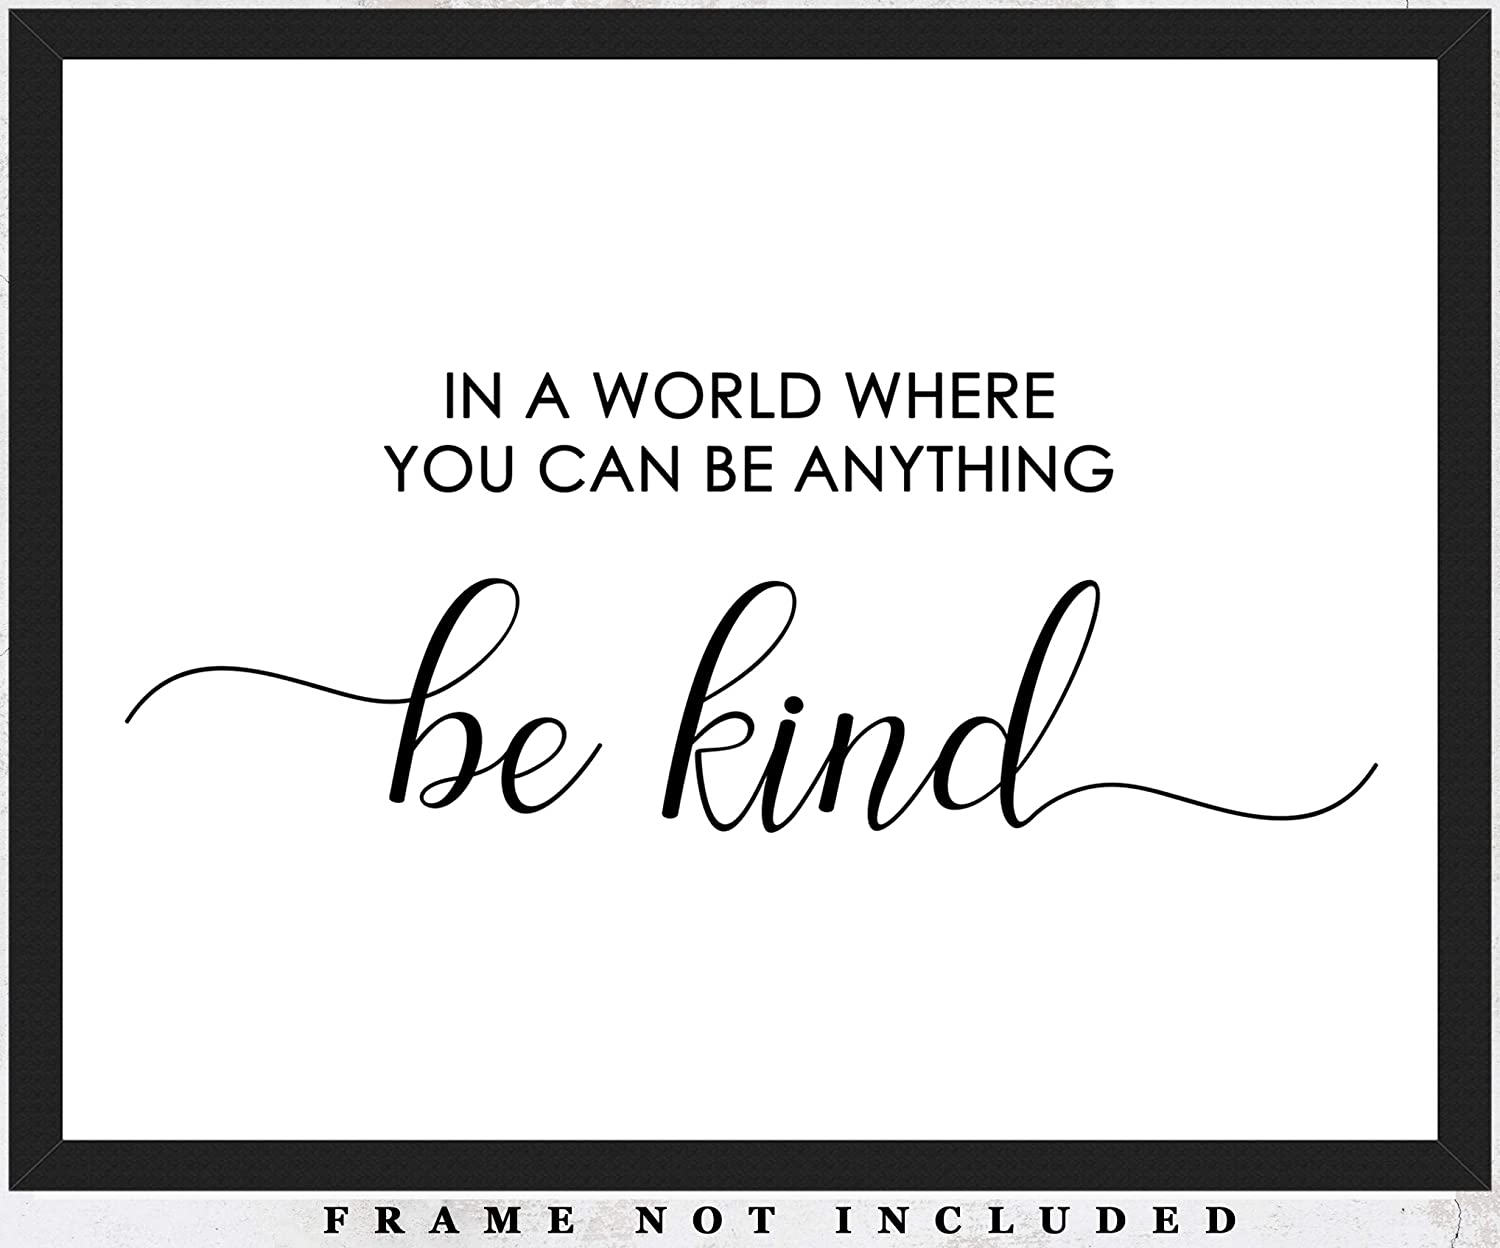 In A World Where You Can Be Anything, Be Kind Typography Wall Art Print: Unique Room Decor - (11x14) Unframed Picture - Great Gift Idea Under $15